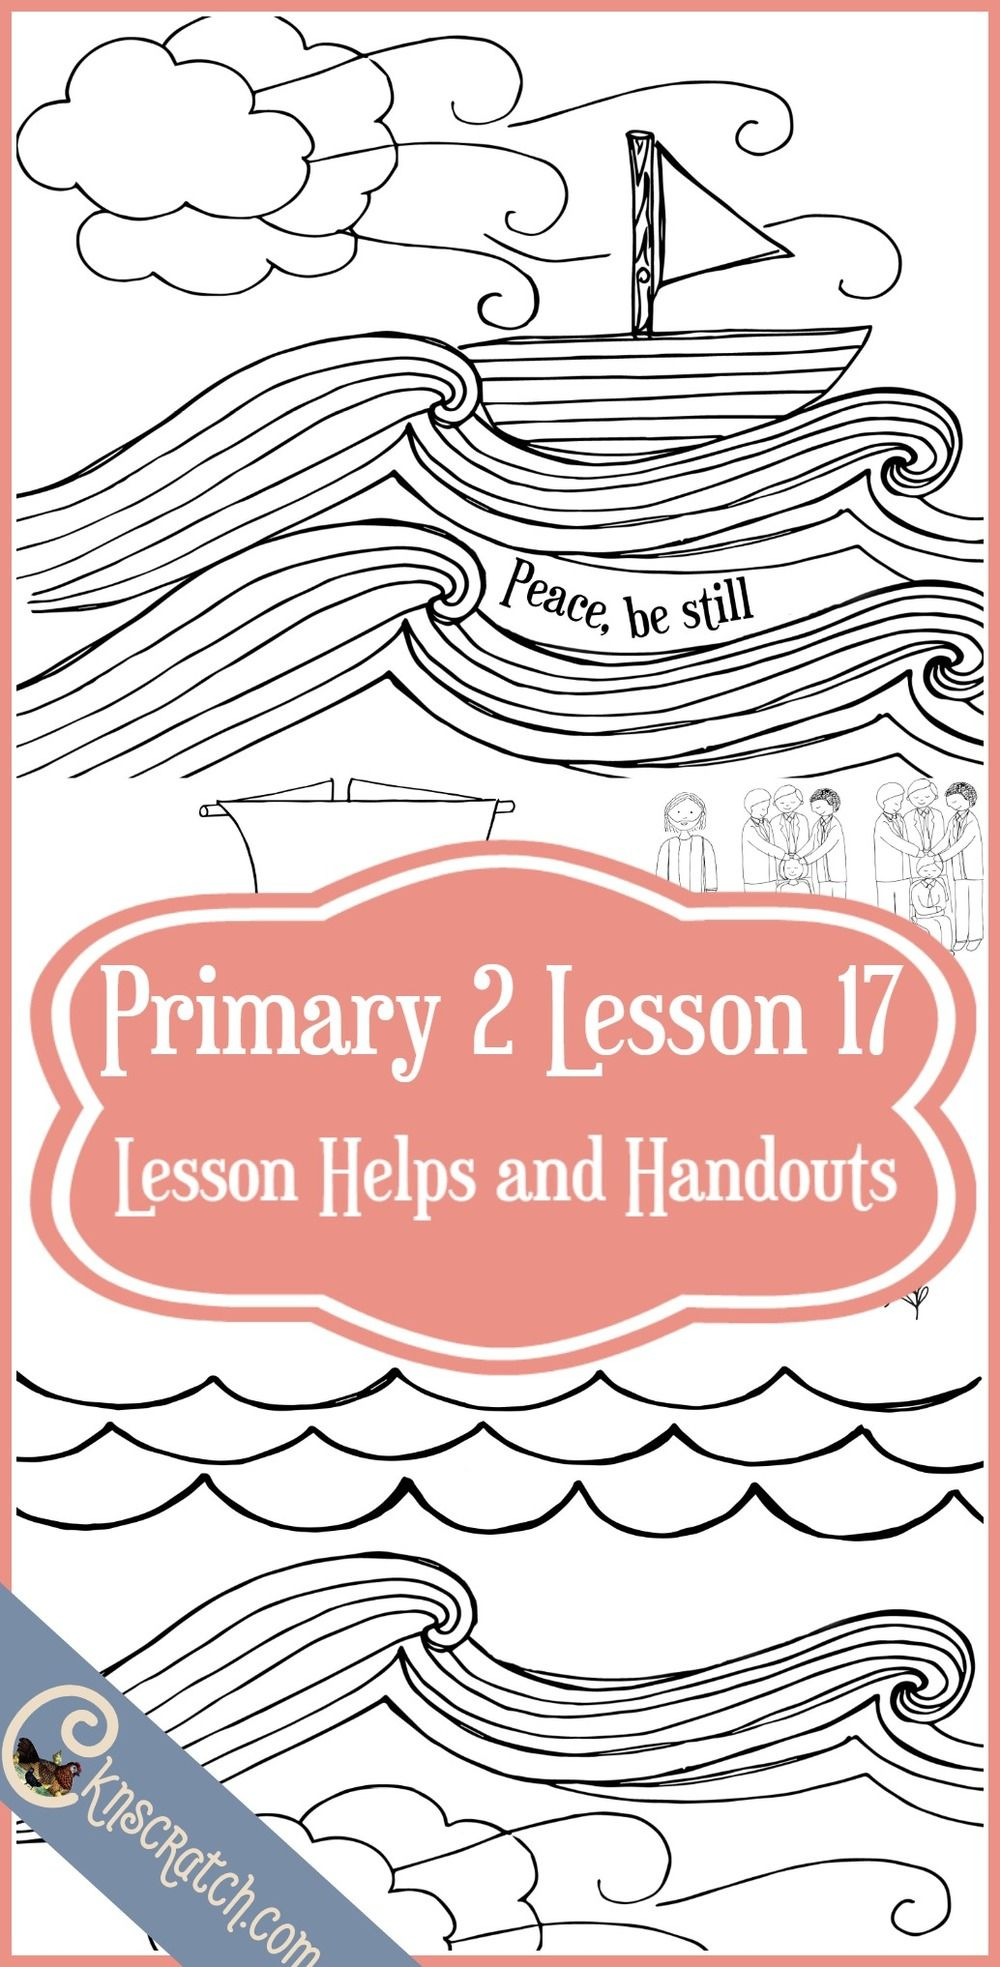 Lesson 17: The Priesthood Helps Me   Pinterest   Primary lessons ...